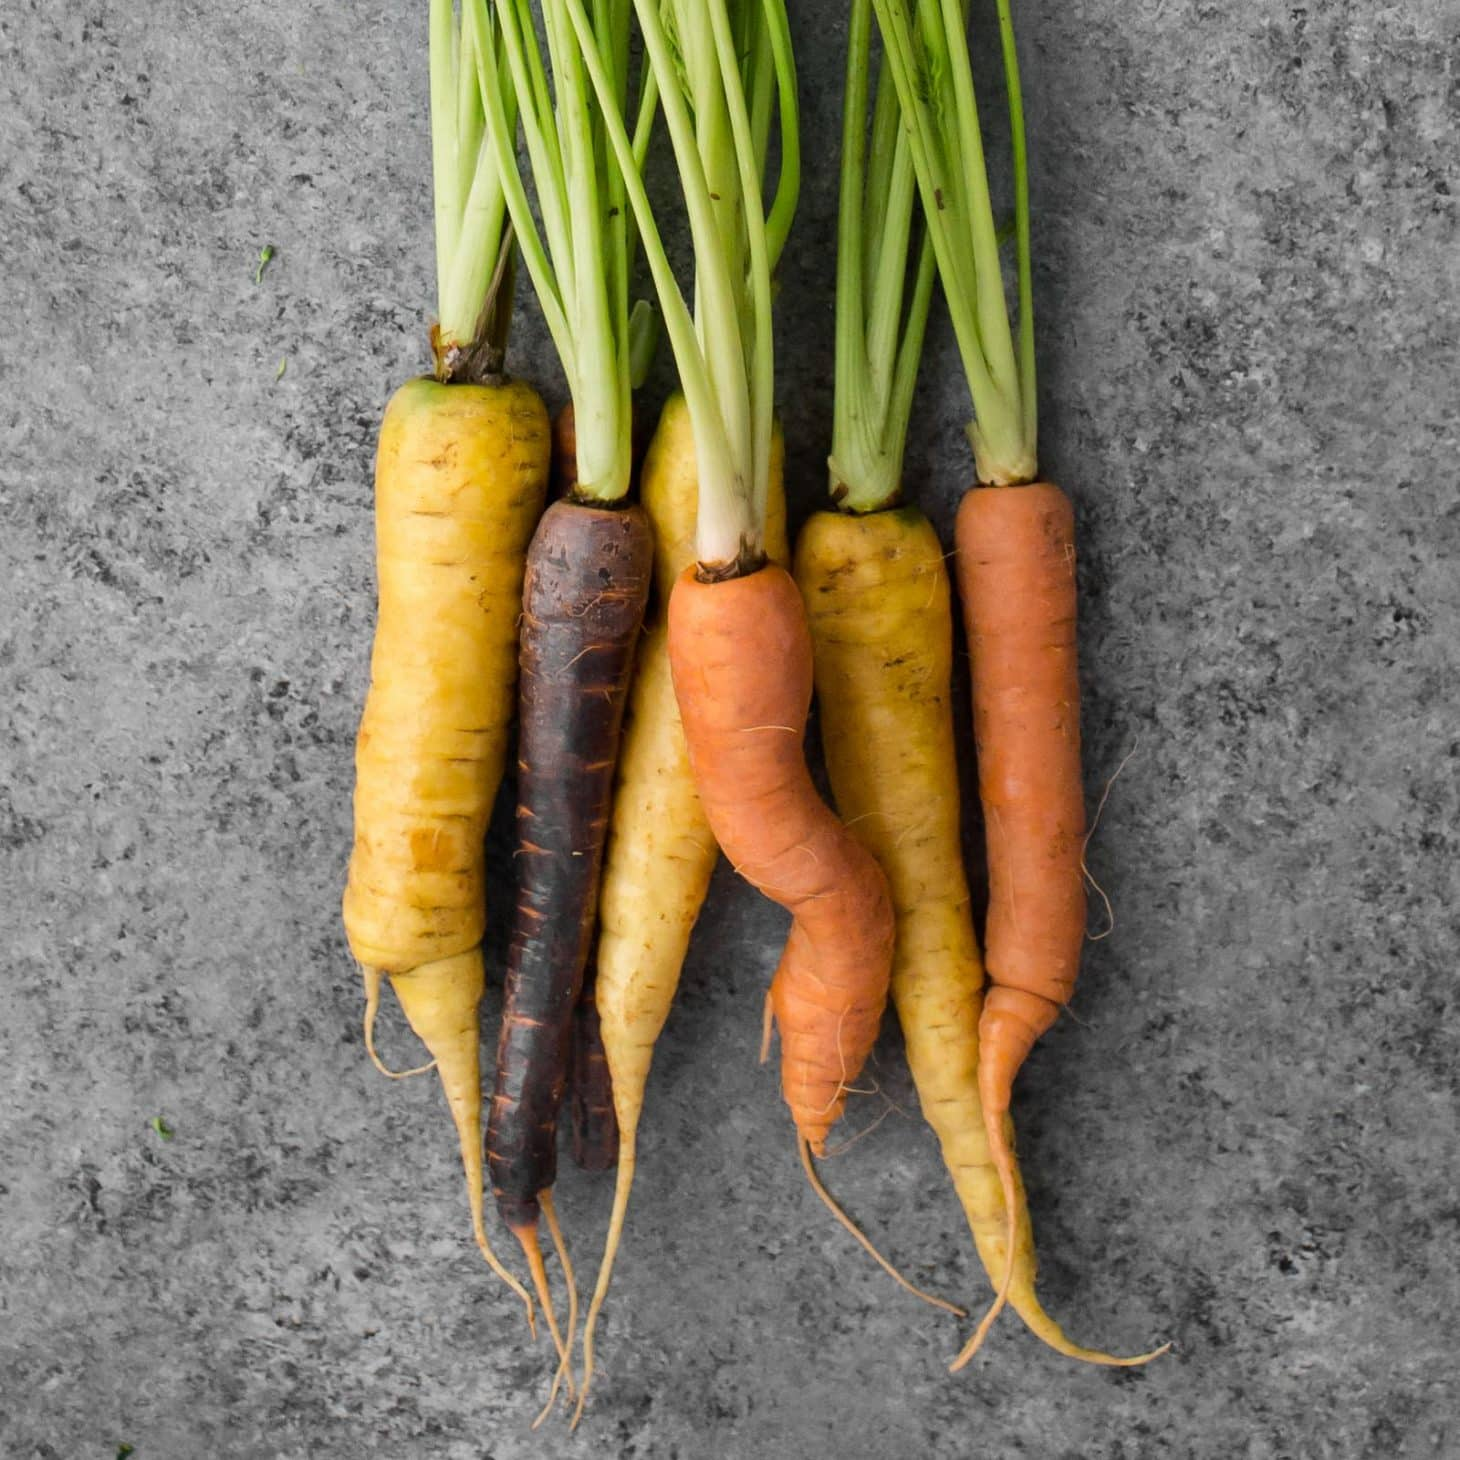 Carrots- Explore an Ingredient